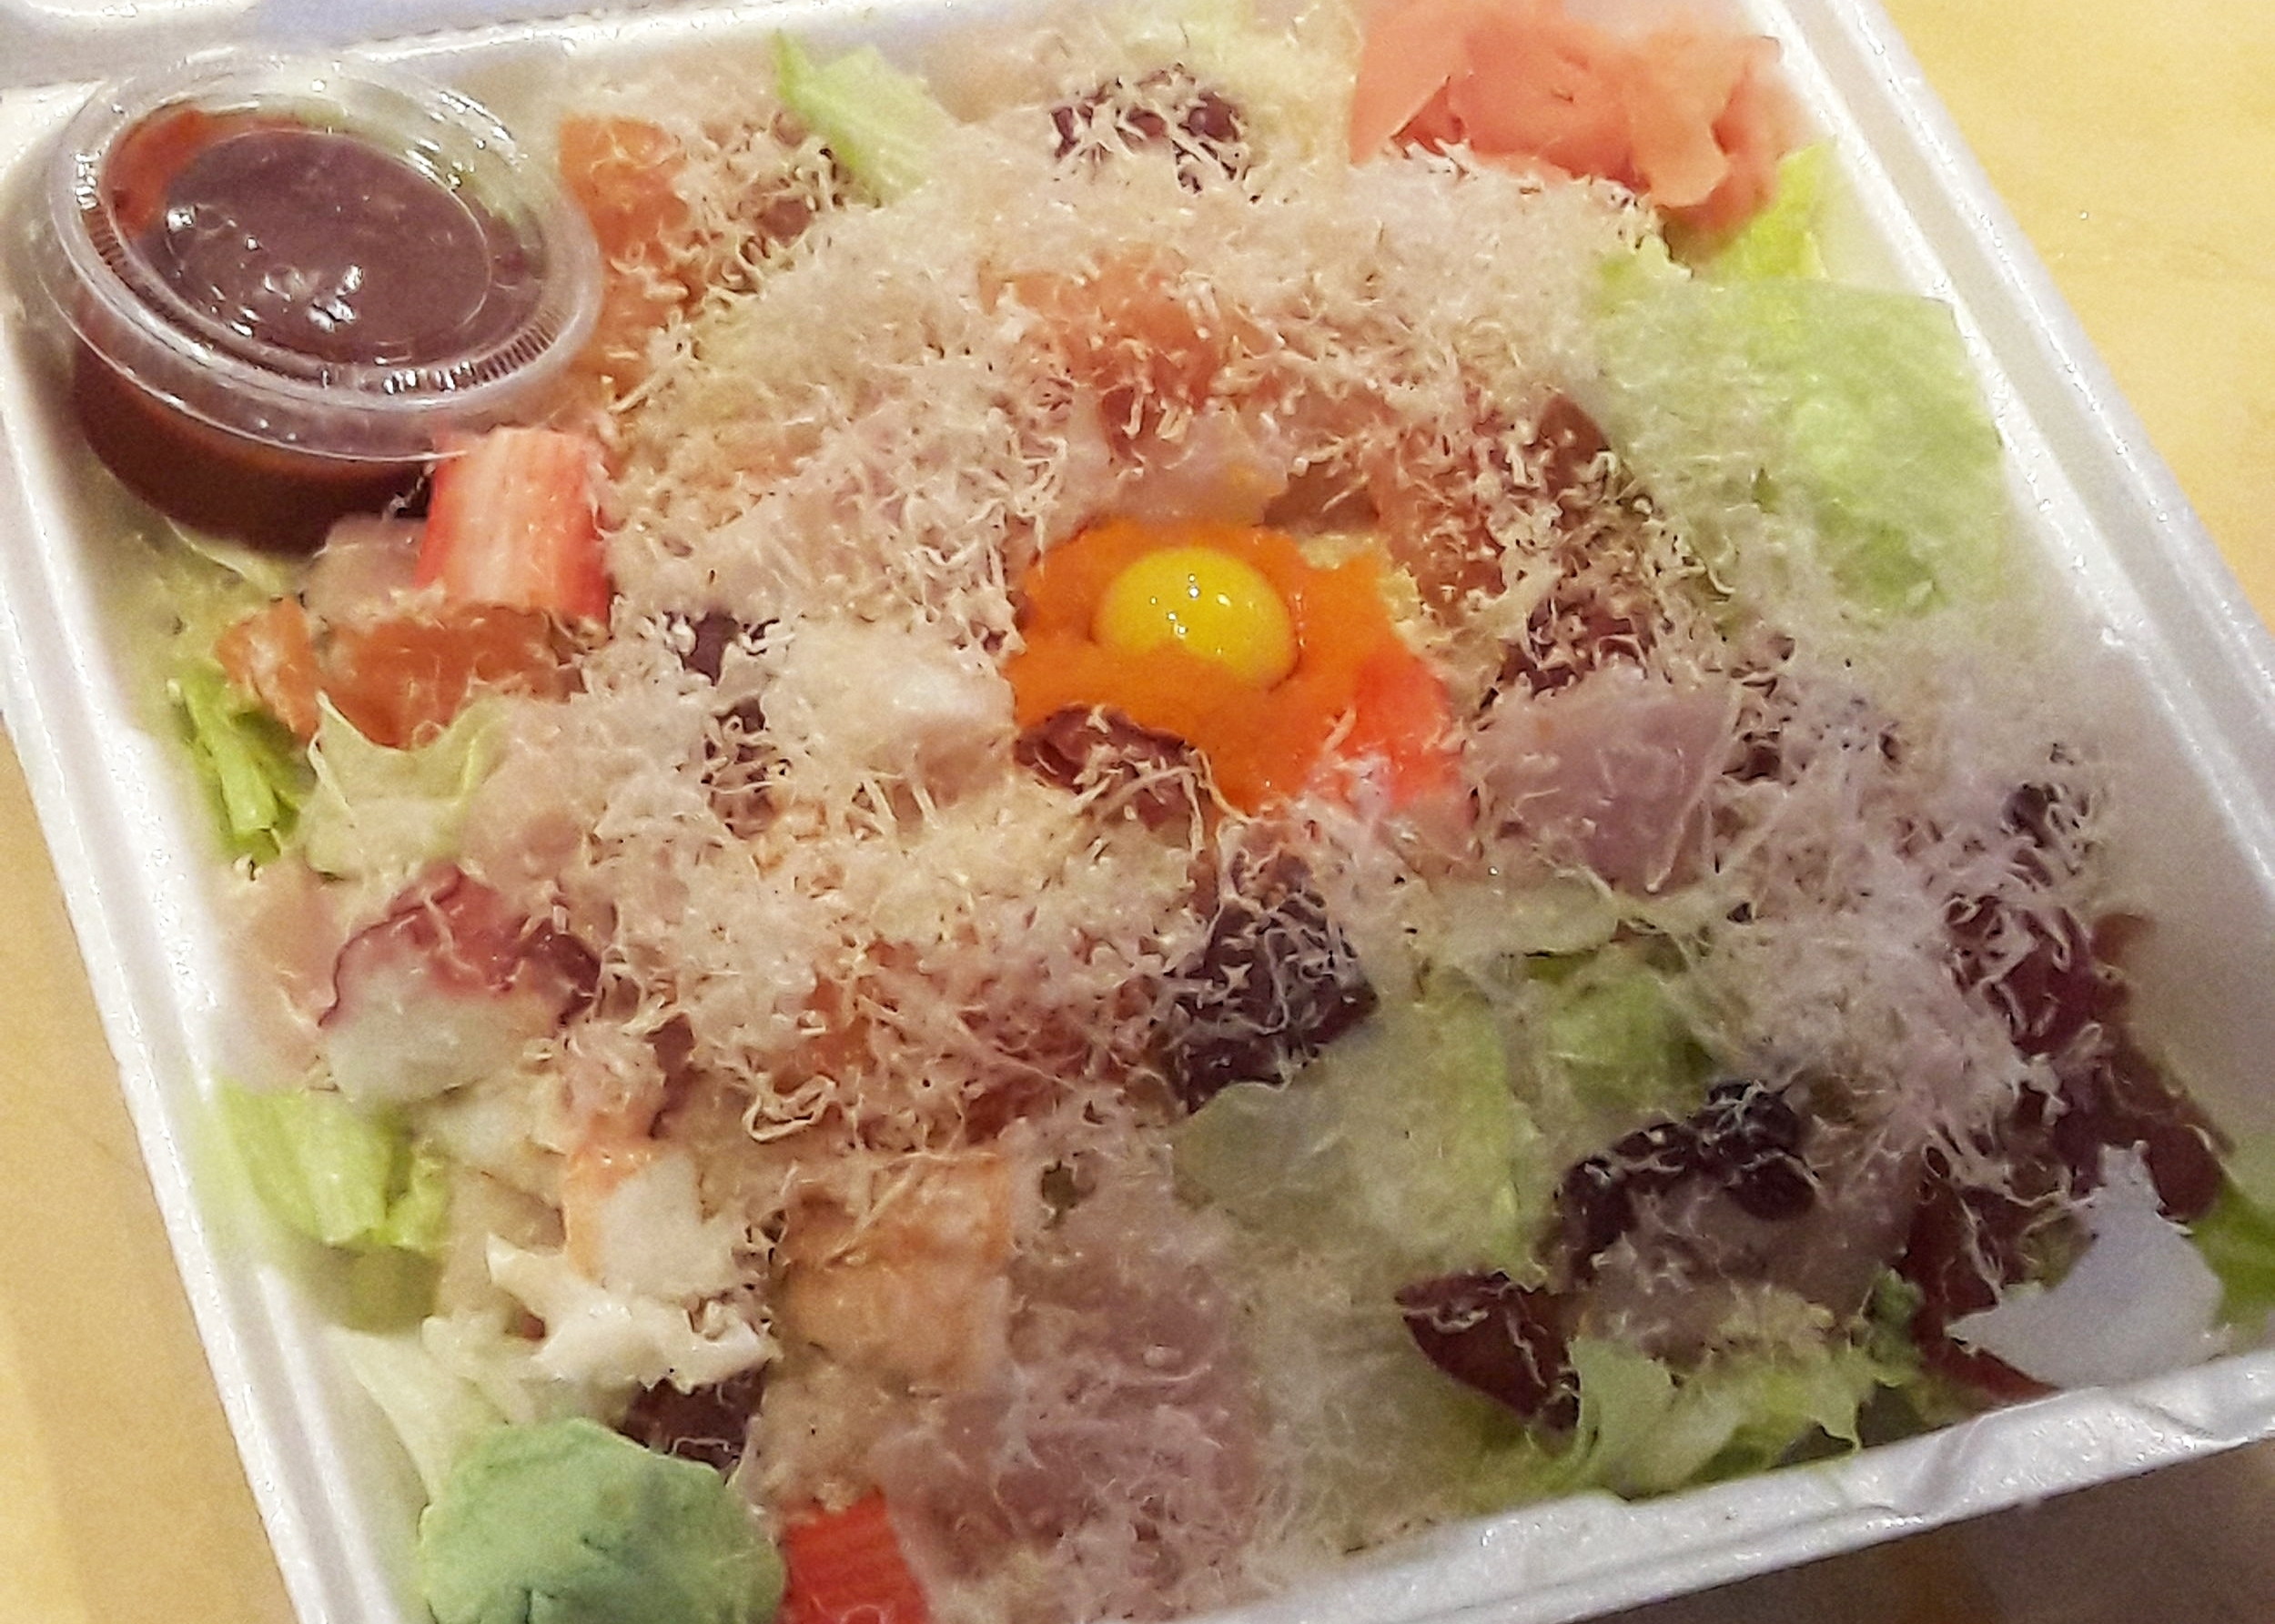 - Korean Chirashi (TO-GO ORDER)